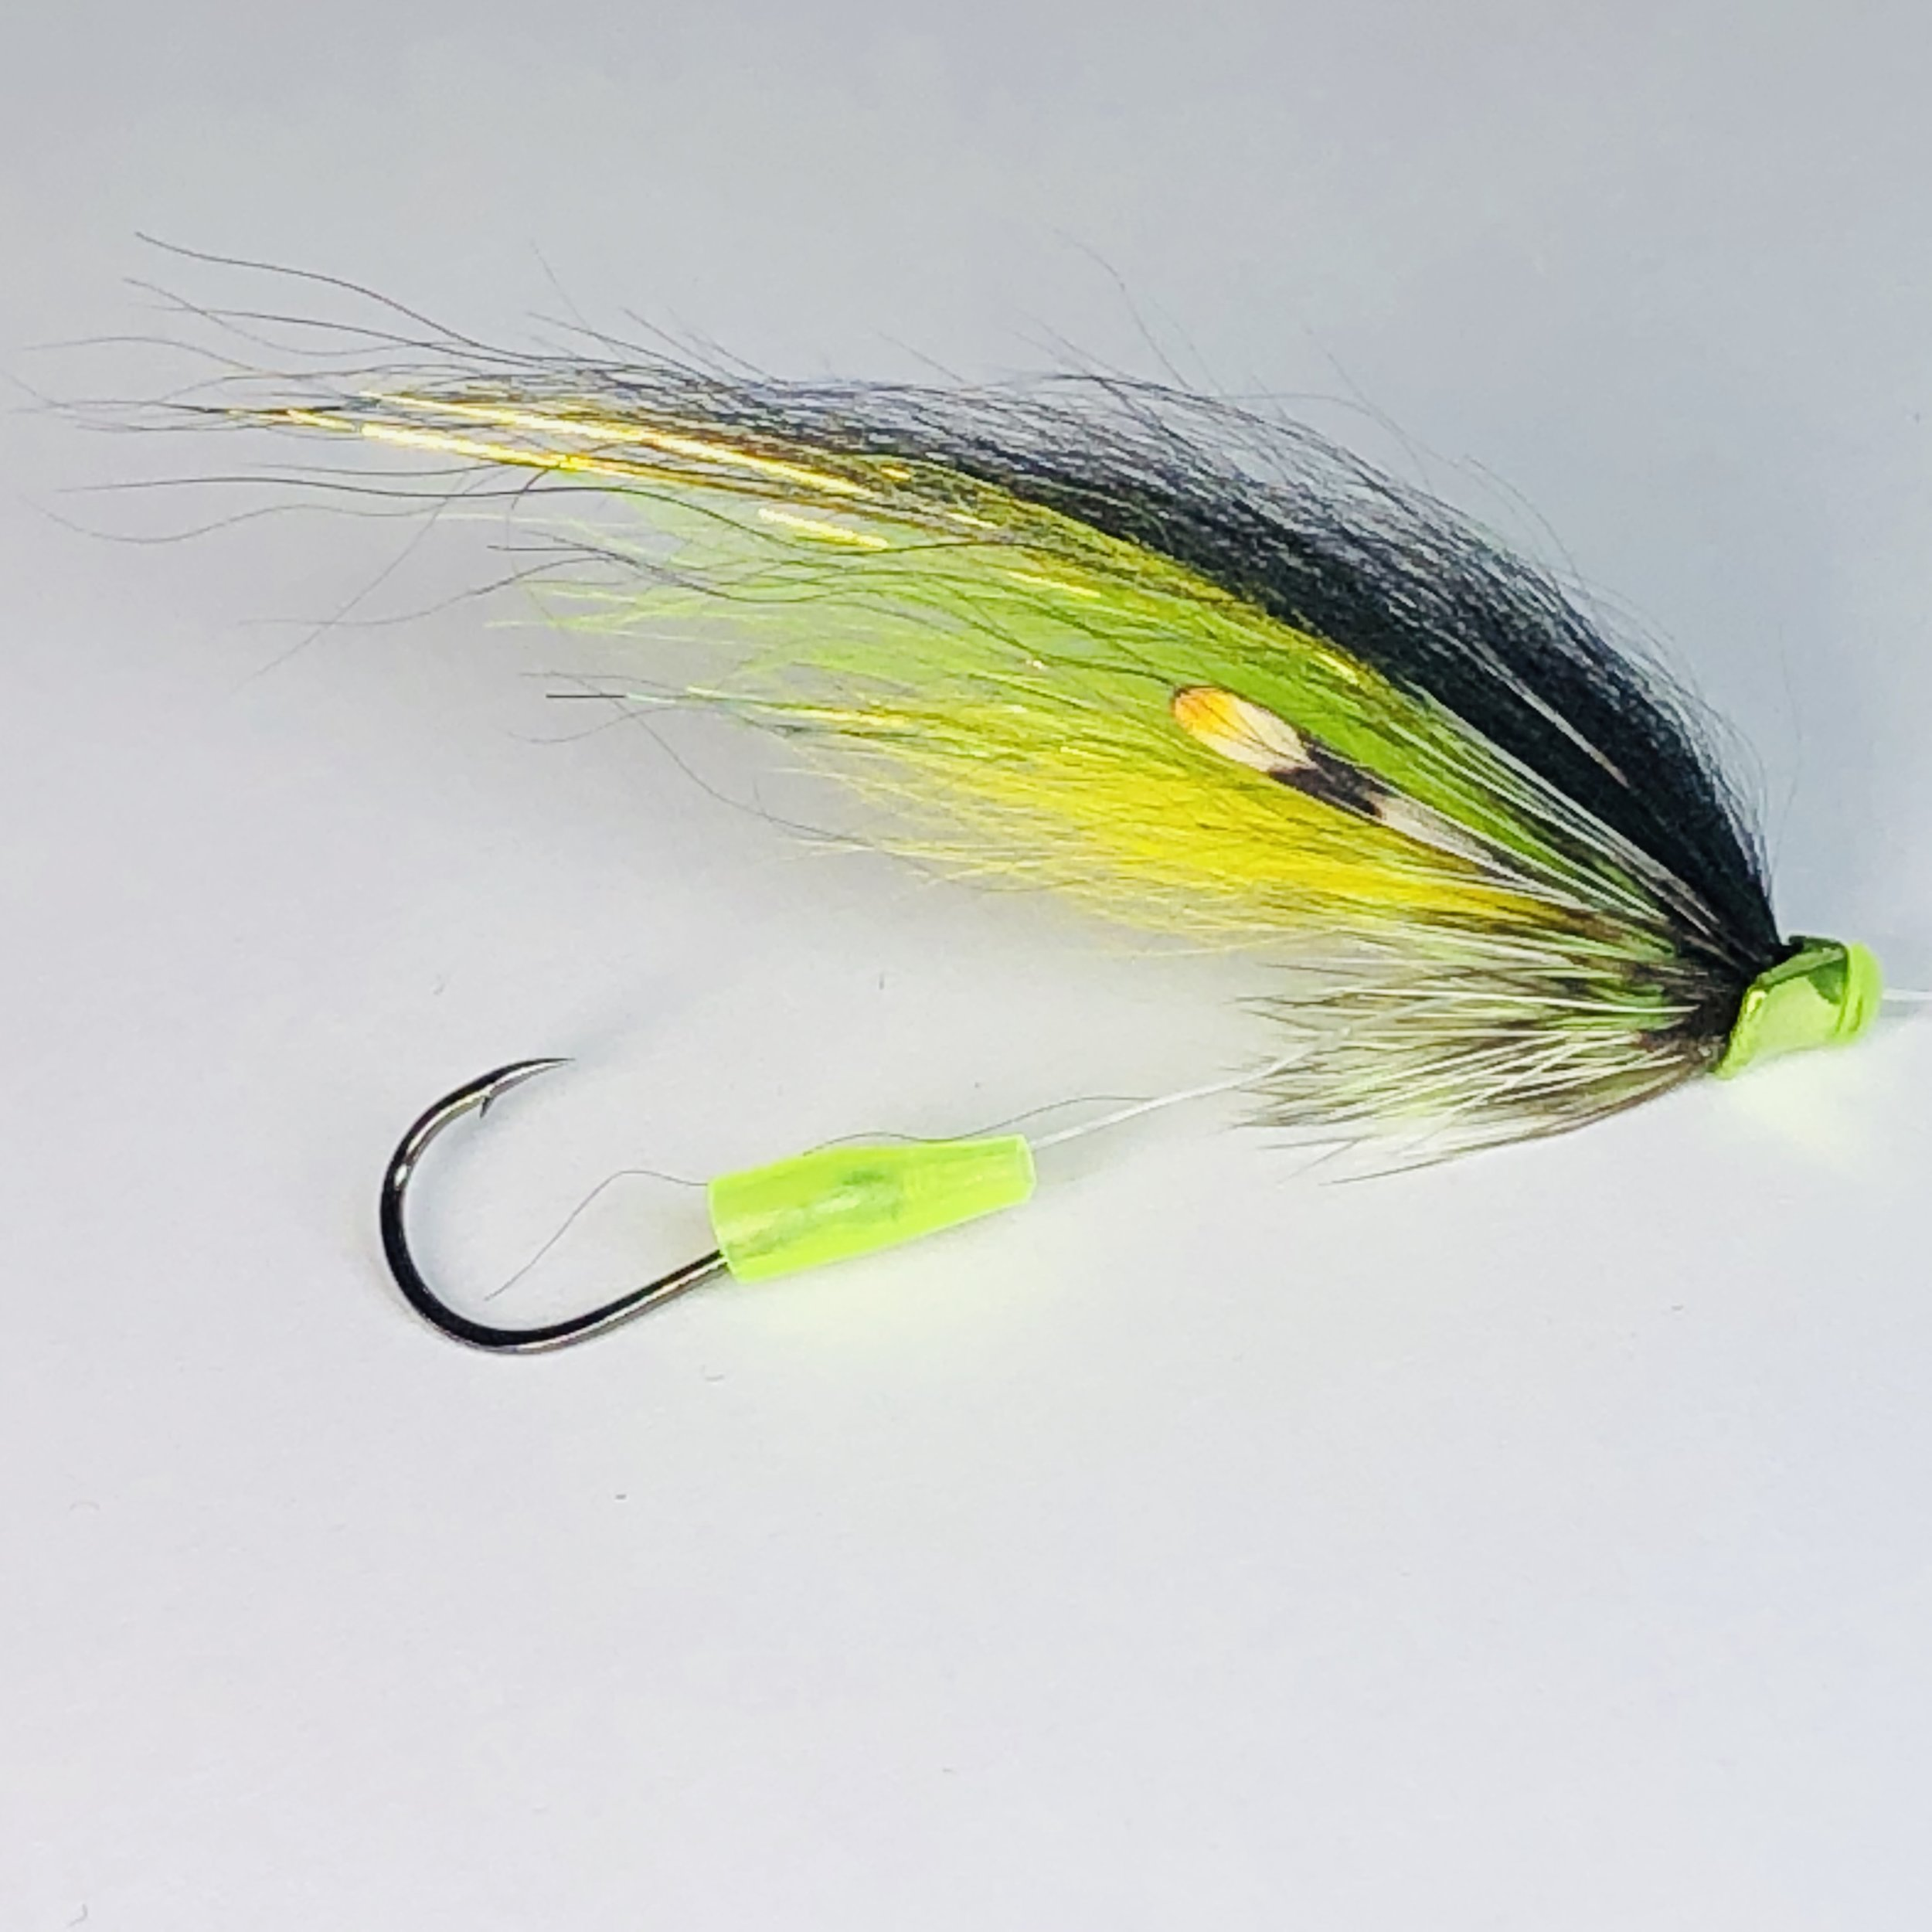 Don't worry about the hook being loose, once you add tension to the line the fly and hook marry up.